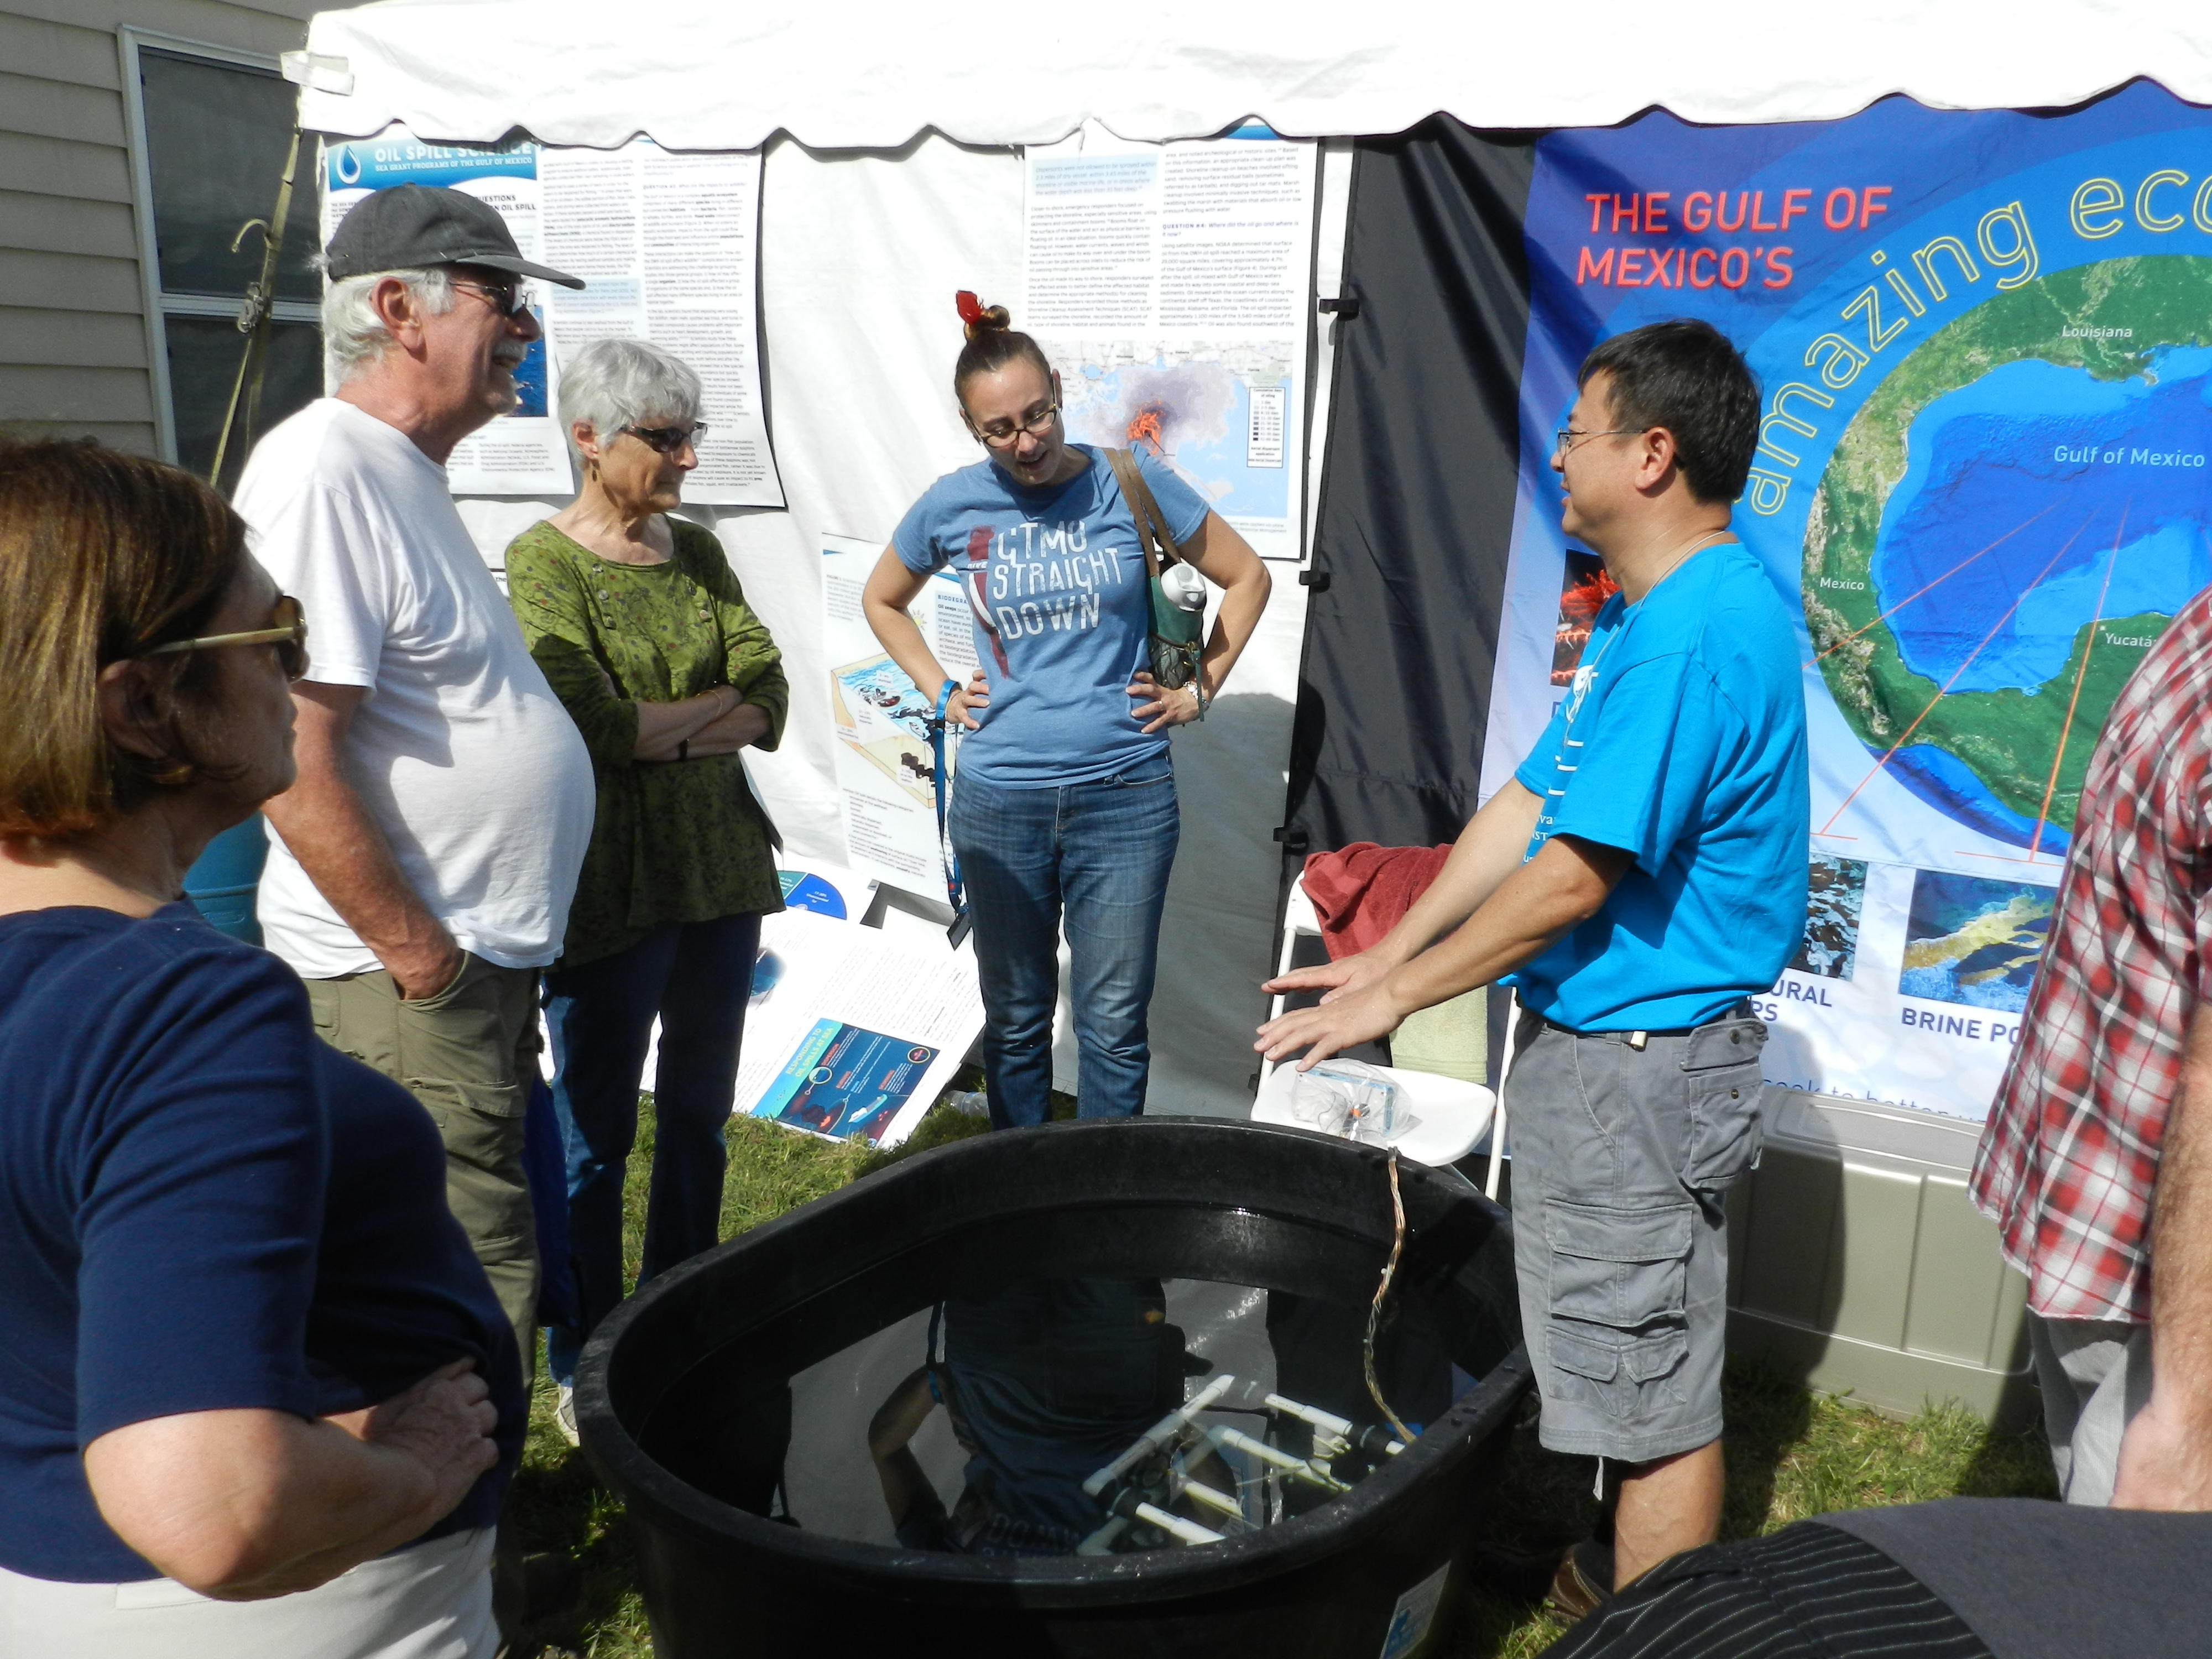 <div style='color:#000000;'><br /><br /><h2>2017 LDEO Open House. ECOGIG researchers set up the Ocean Discovery Zone for visitors to the Lamont-Doherty Earth Observatory annual open house. Visitors drove ROVs (remotely operated vehicles) and built deep sea corals and deep sea tube worms!</h2>Photo courtesy of Andy Juhl (ECOGIG &amp; LDEO).</div>